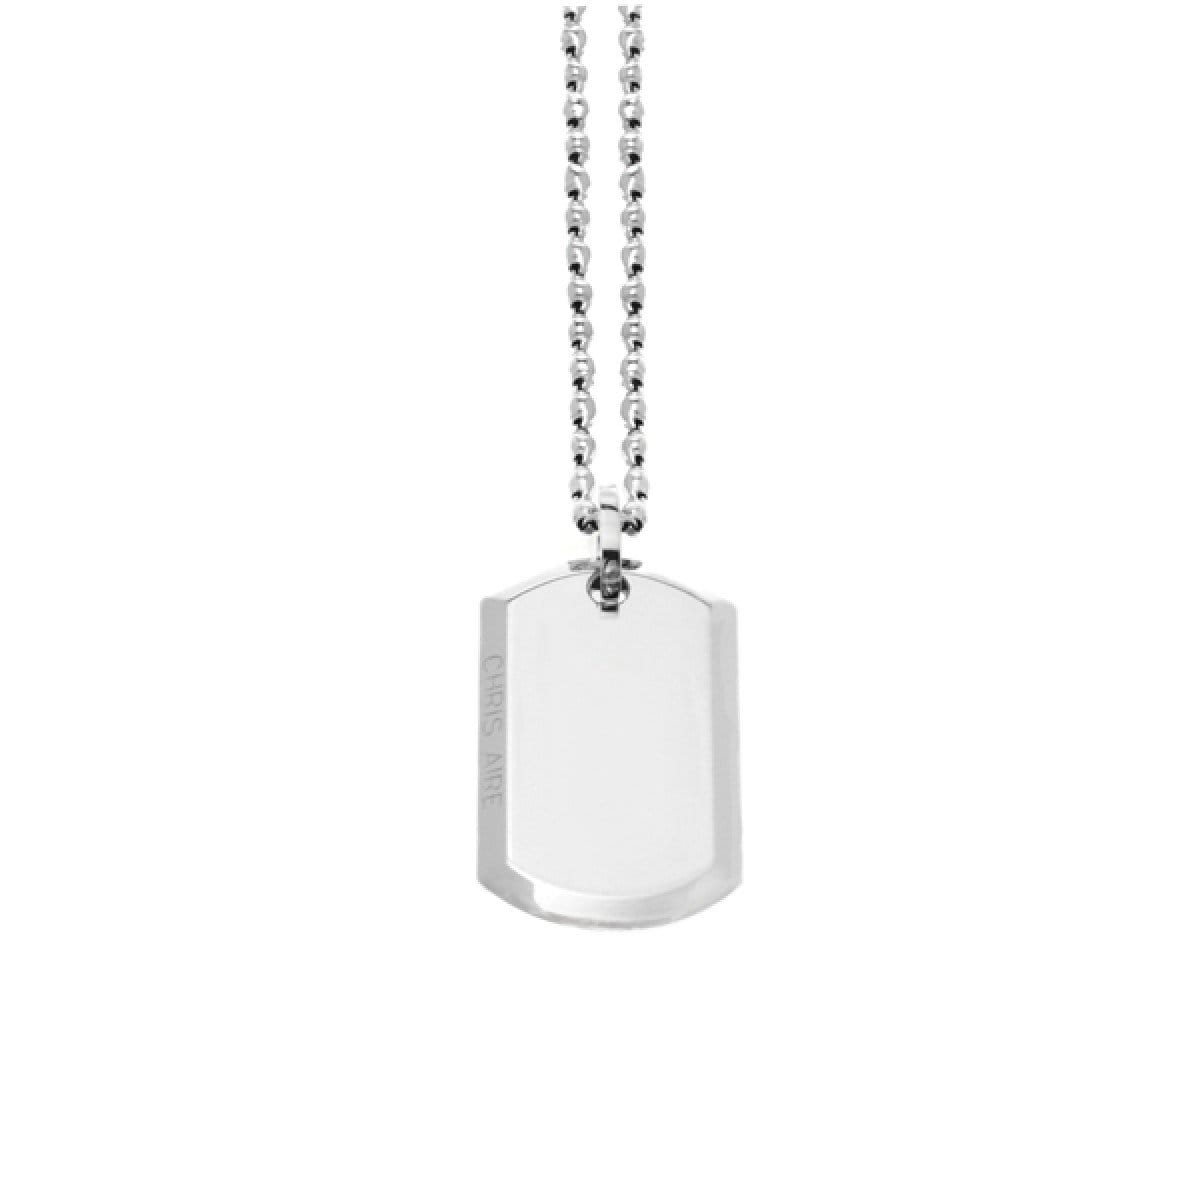 WHITE GOLD DOG TAG - Chris Aire Fine Jewelry & Timepieces